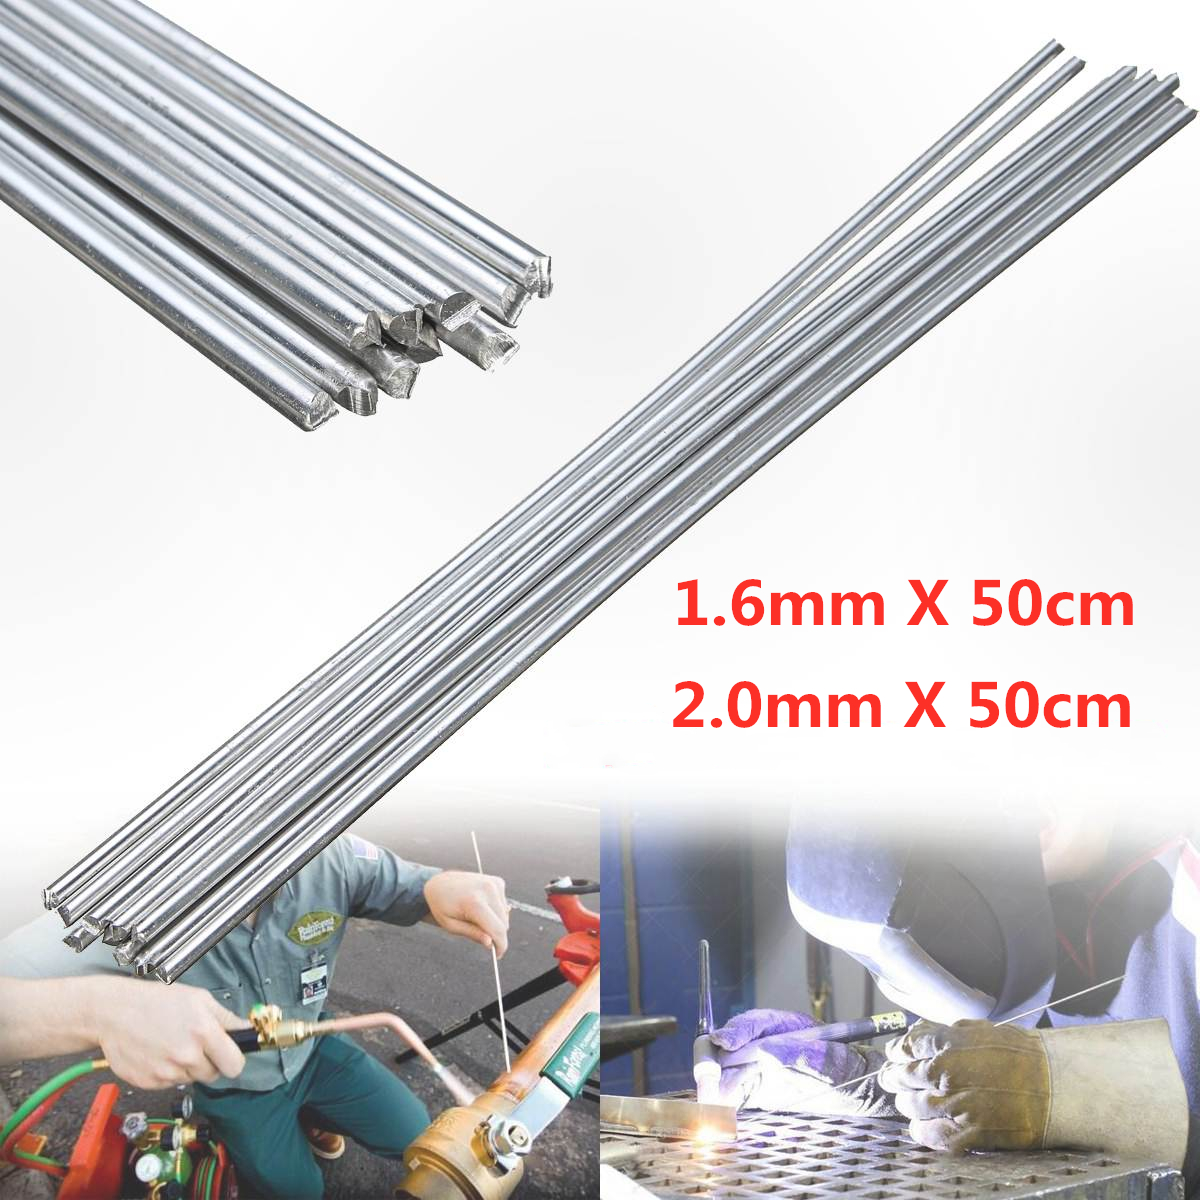 20/10Pcs 1.6/2.0mm x 50cm Aluminum Welding Rod Low Temperature Metal Soldering Brazing Rods with Corrosion Resistance